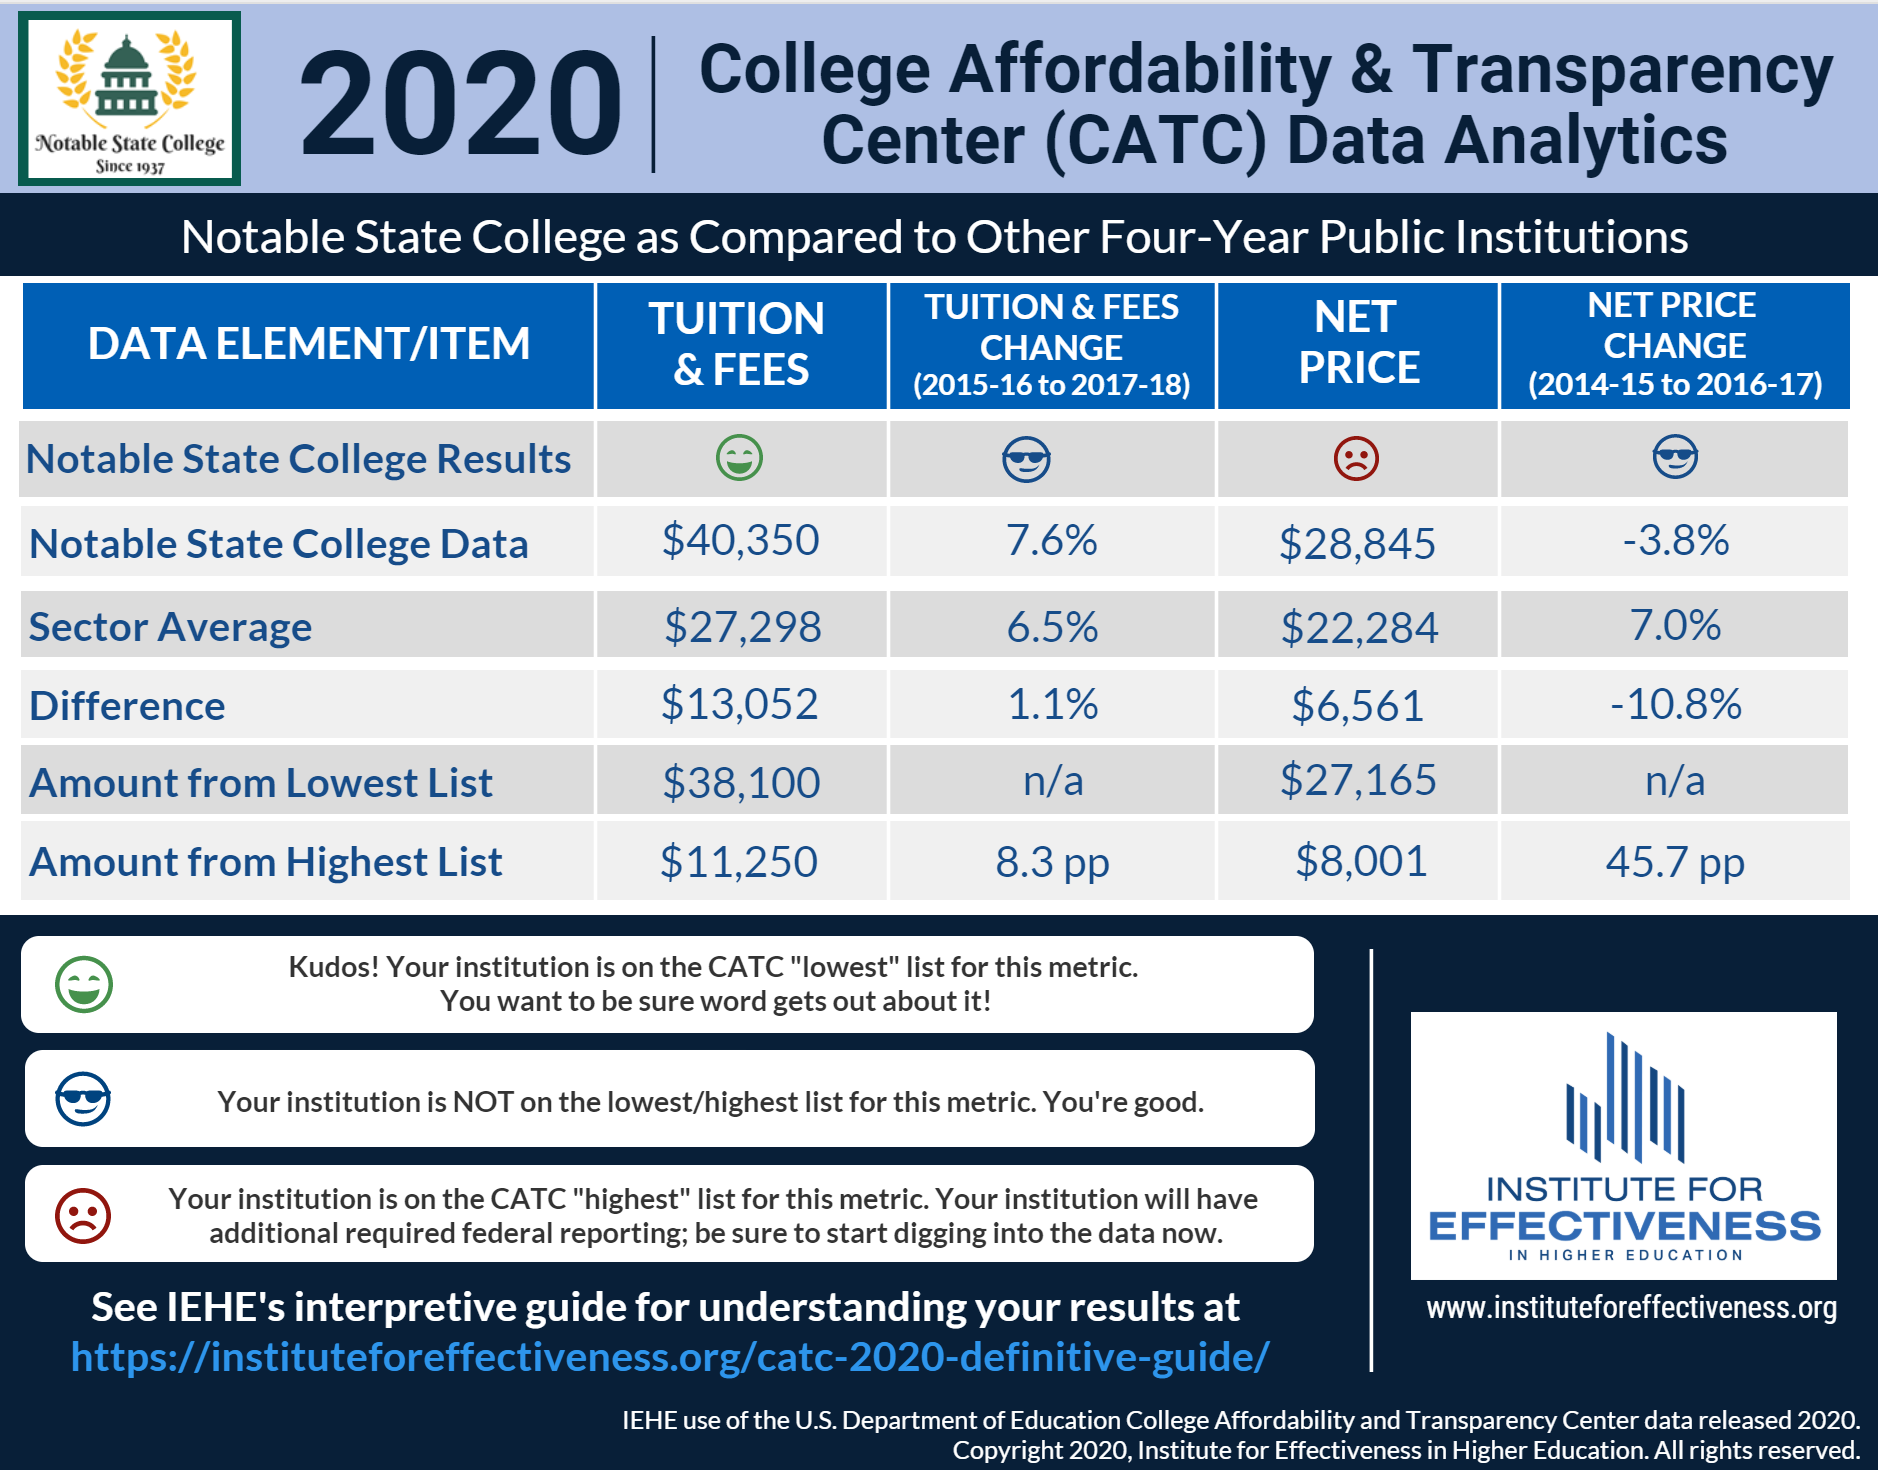 College Affordability and Transparency Center CATC Data Analytics report